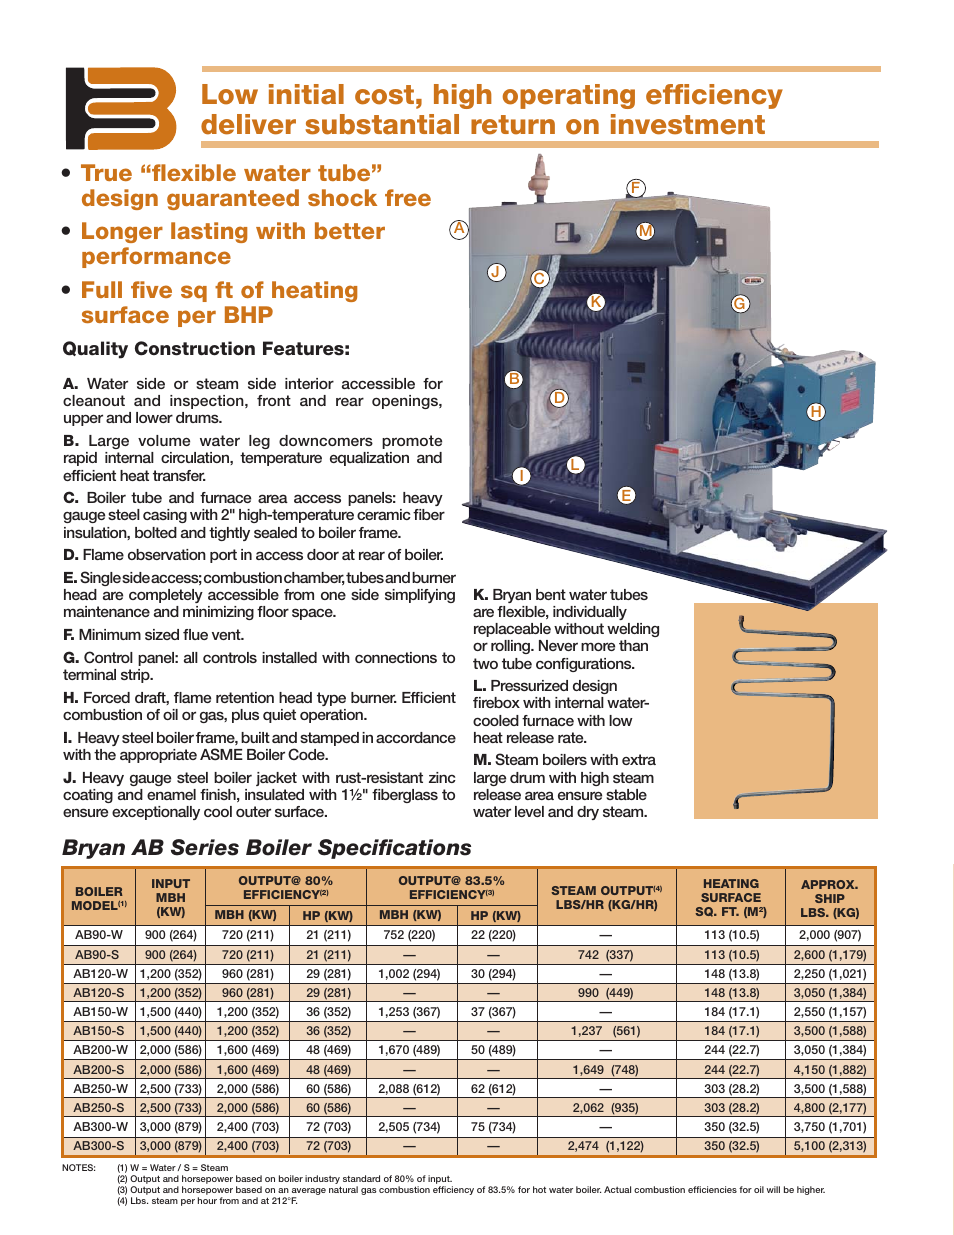 Bryan Ab Series Boiler Specifi Cations  Quality Construction Features